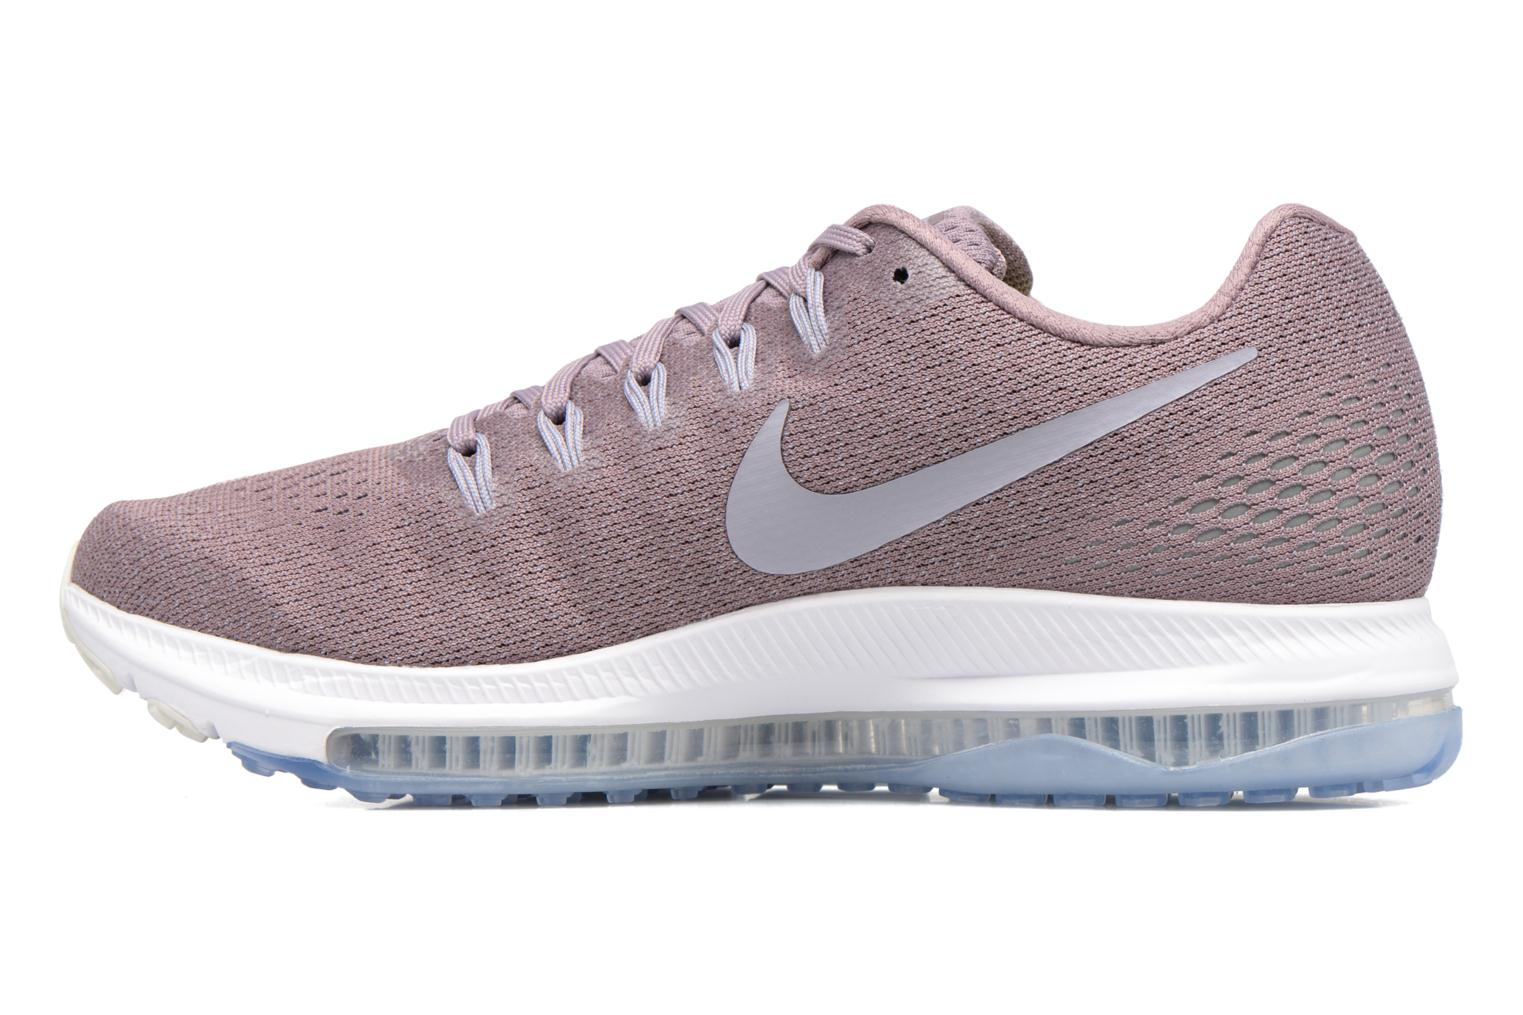 Chaussures de sport Nike Wmns Nike Zoom All Out Low Violet vue face